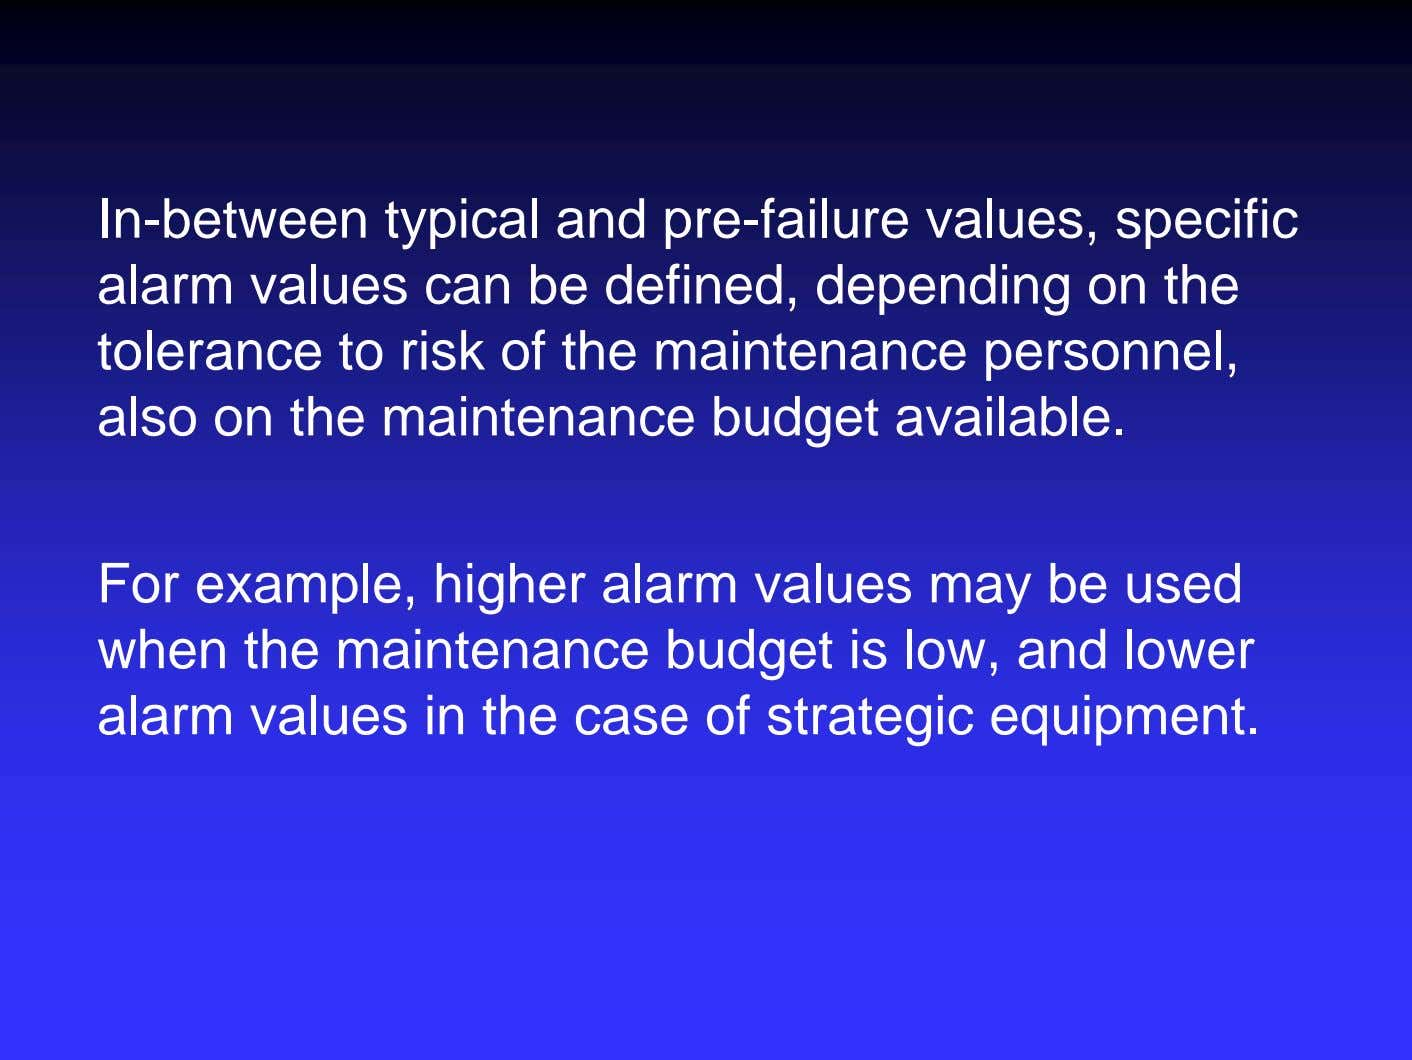 In-between typical and pre-failure values, specific alarm values can be defined, depending on the tolerance